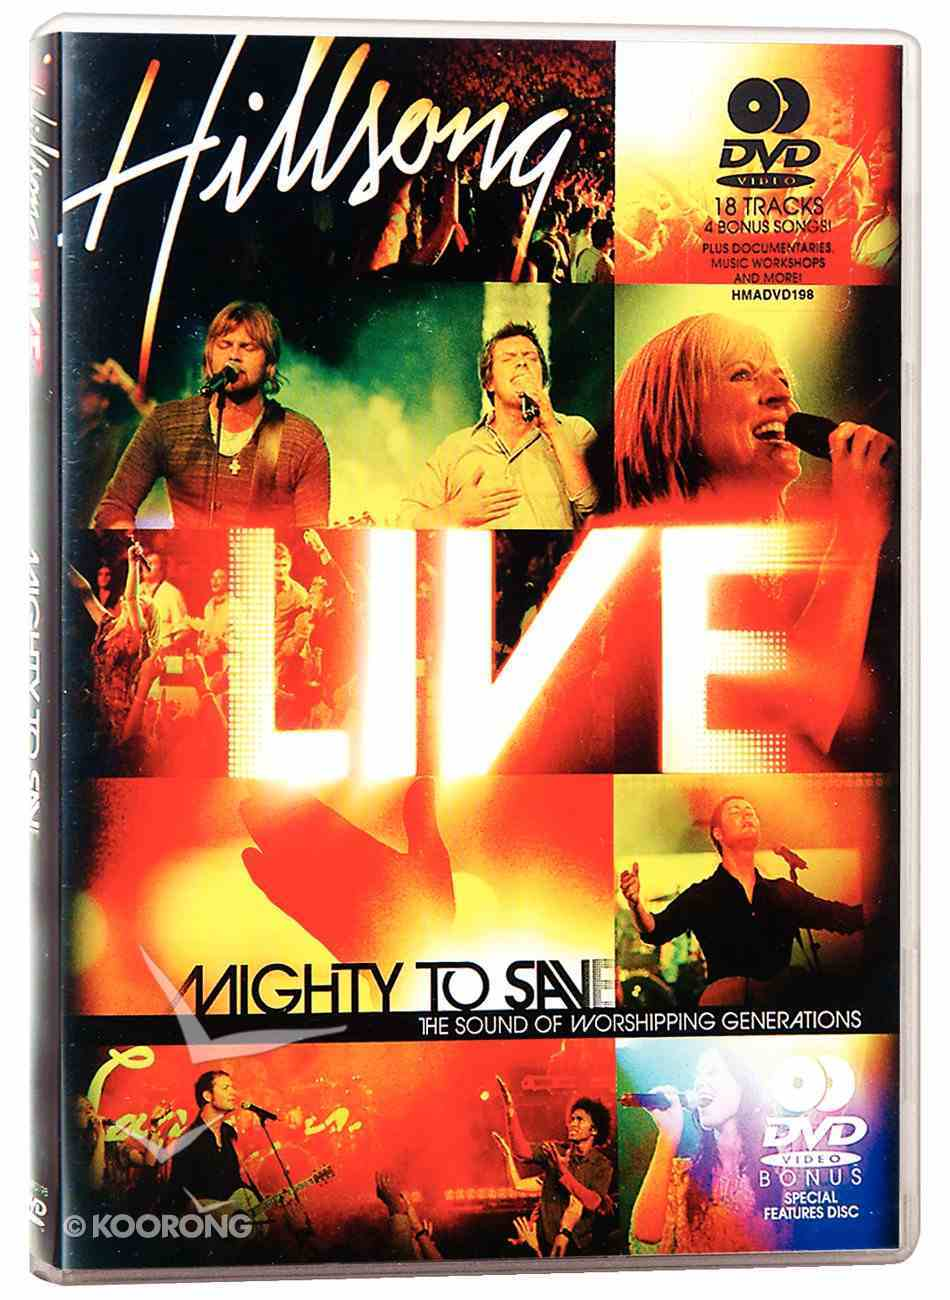 2006 Mighty to Save DVD